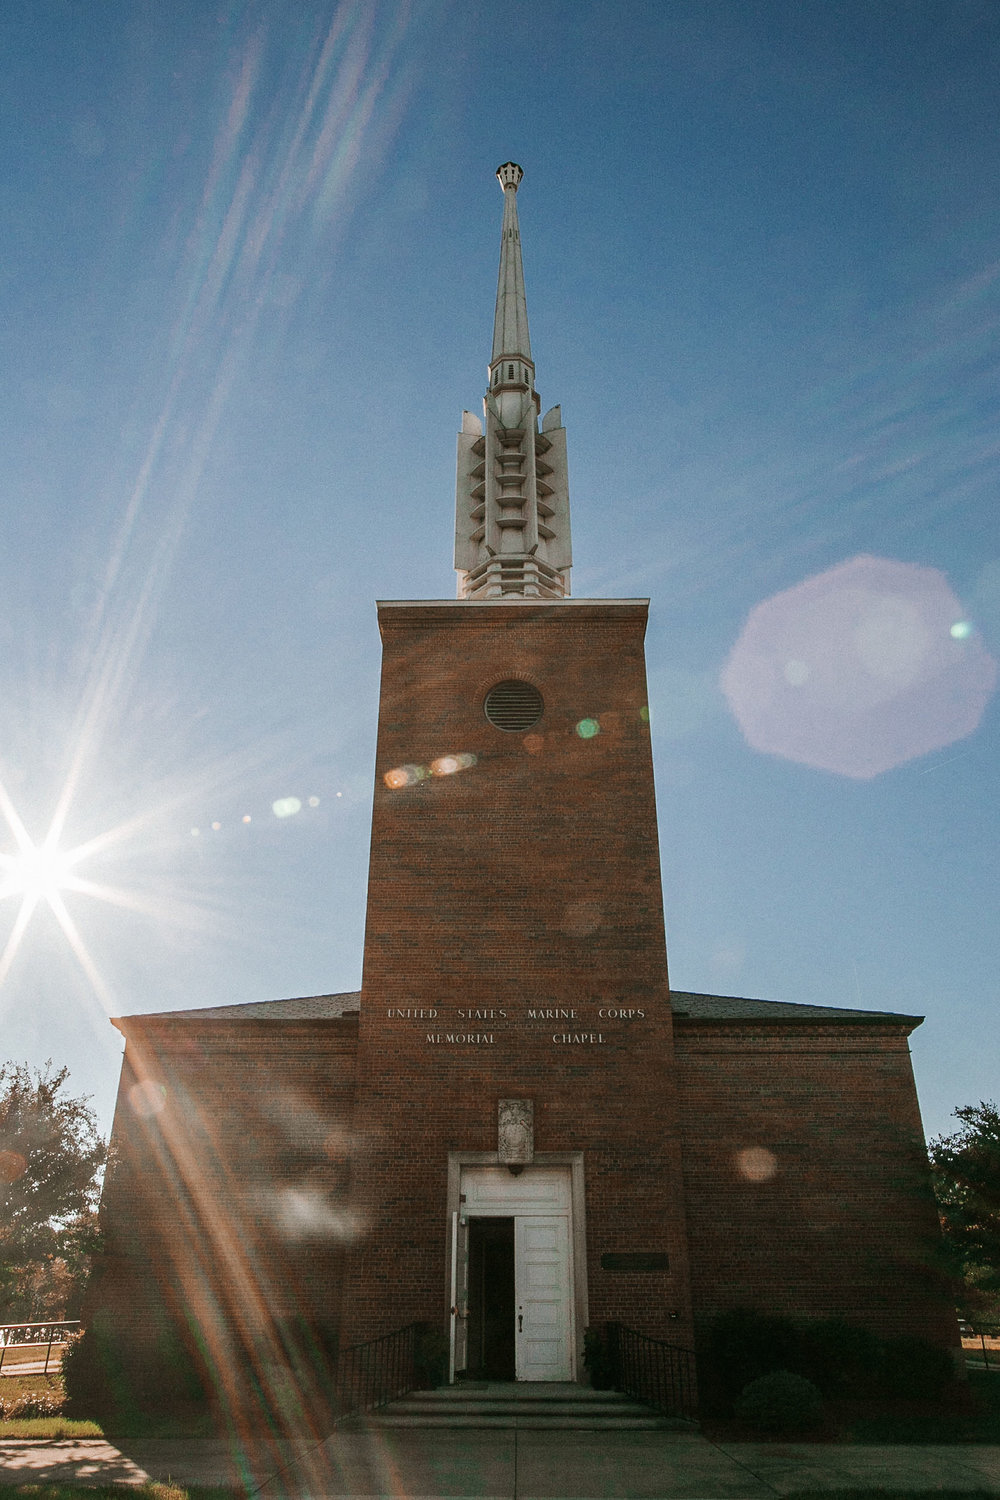 ceremony site at the united states marine corps memorial chapel